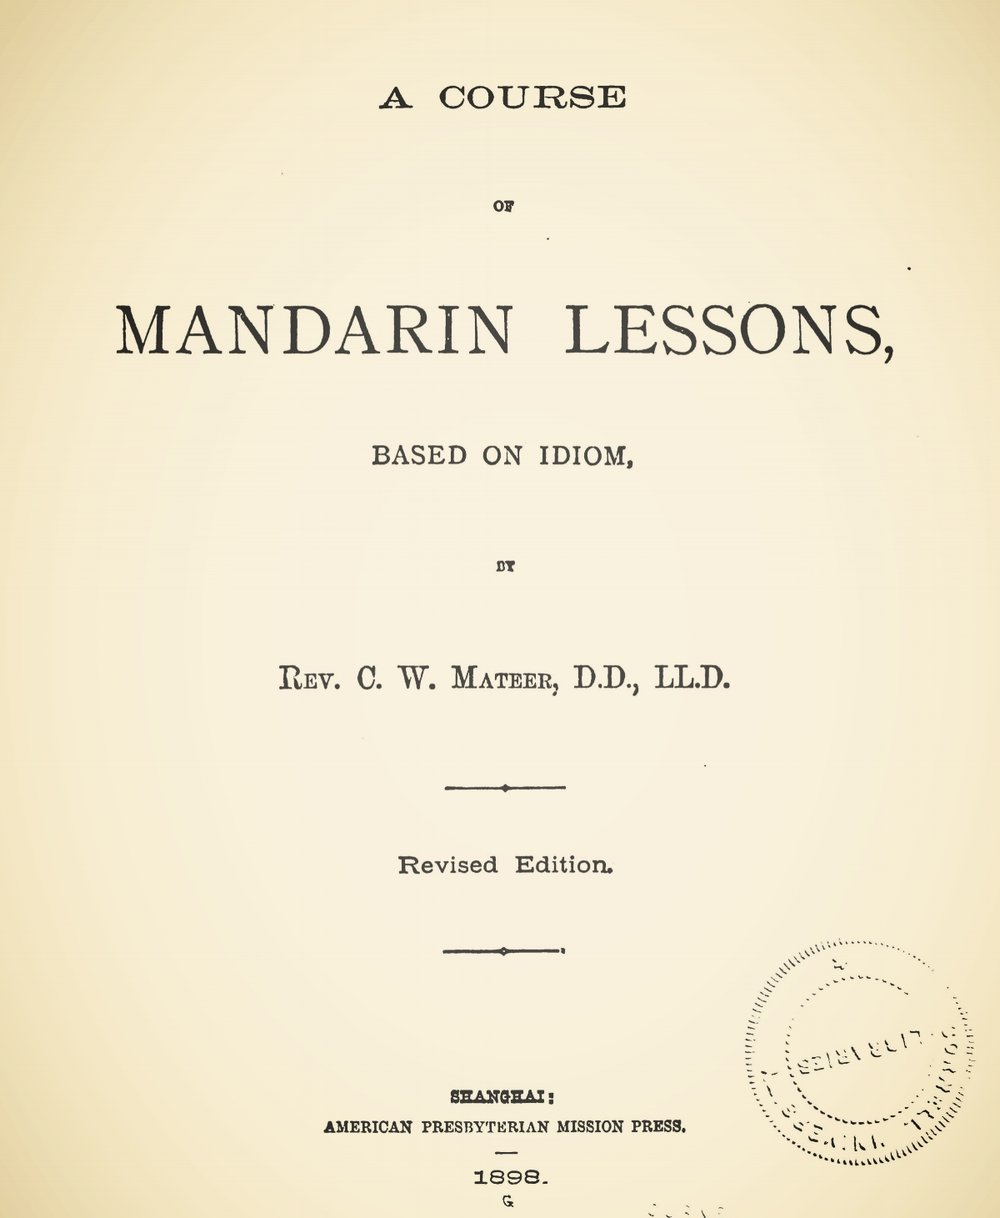 Mateer, Calvin Wilson, A Course of Mandarin Lessons, Revised Title Page.jpg